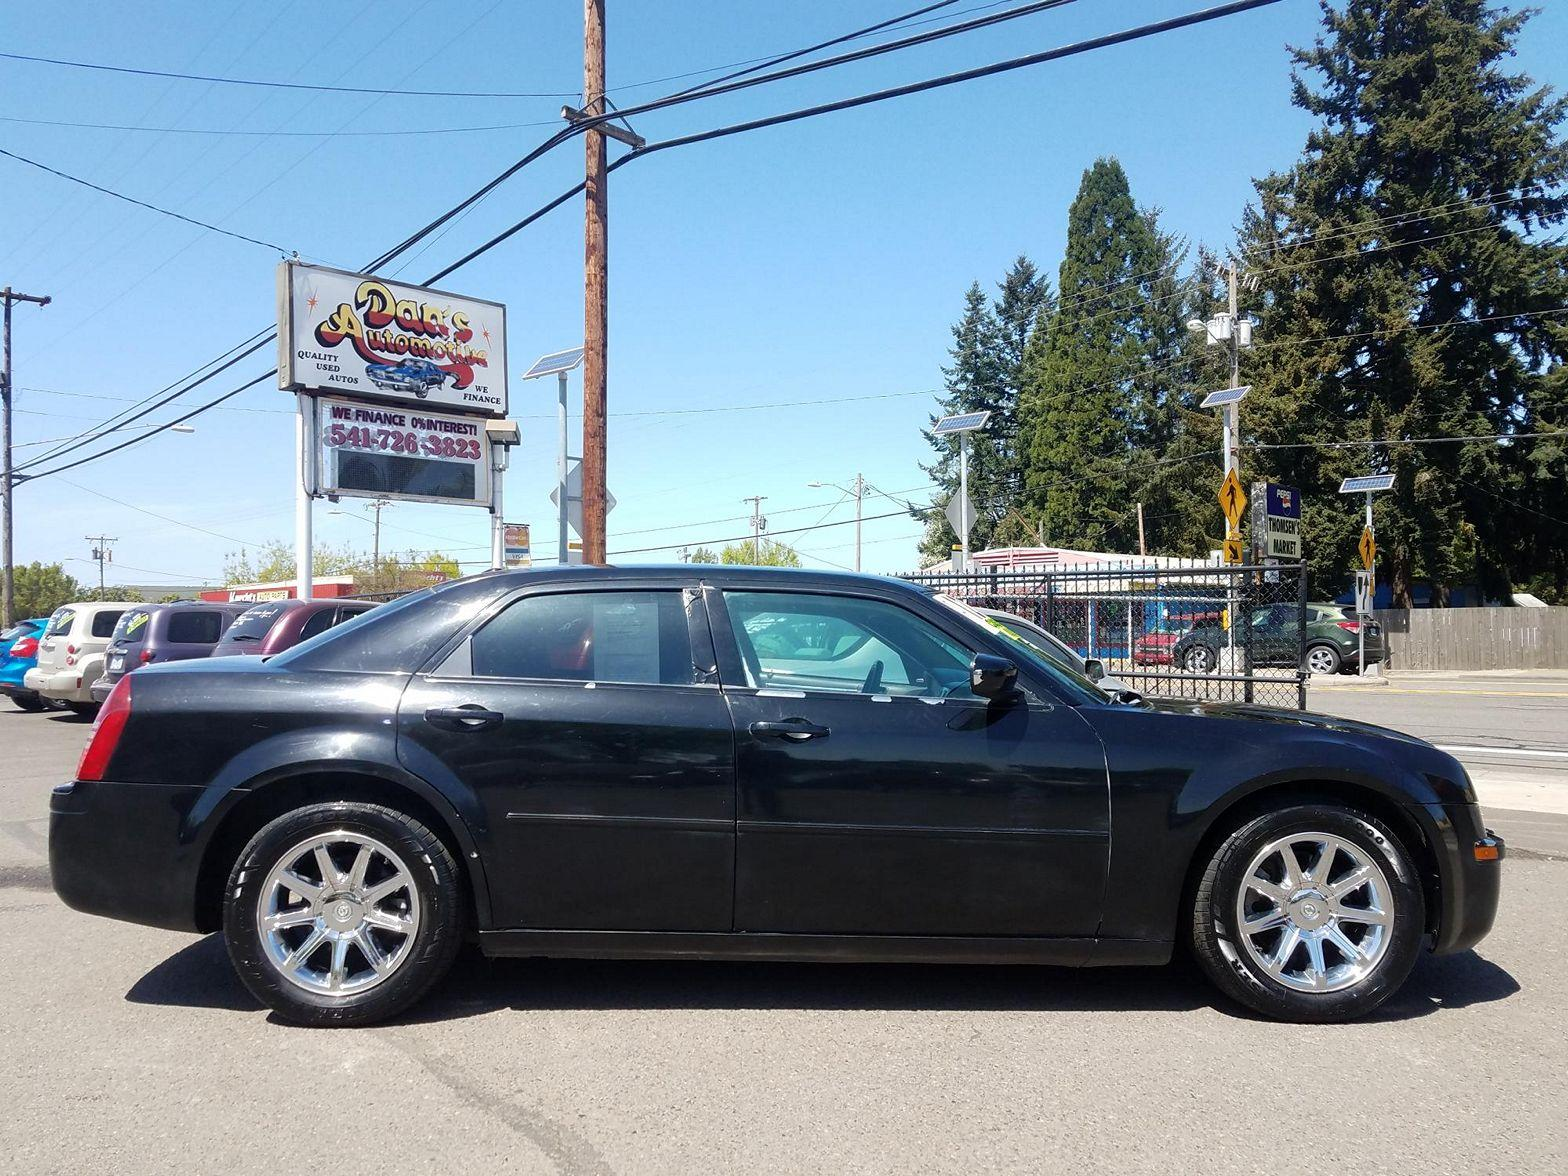 2005 Chrysler 300 $1275